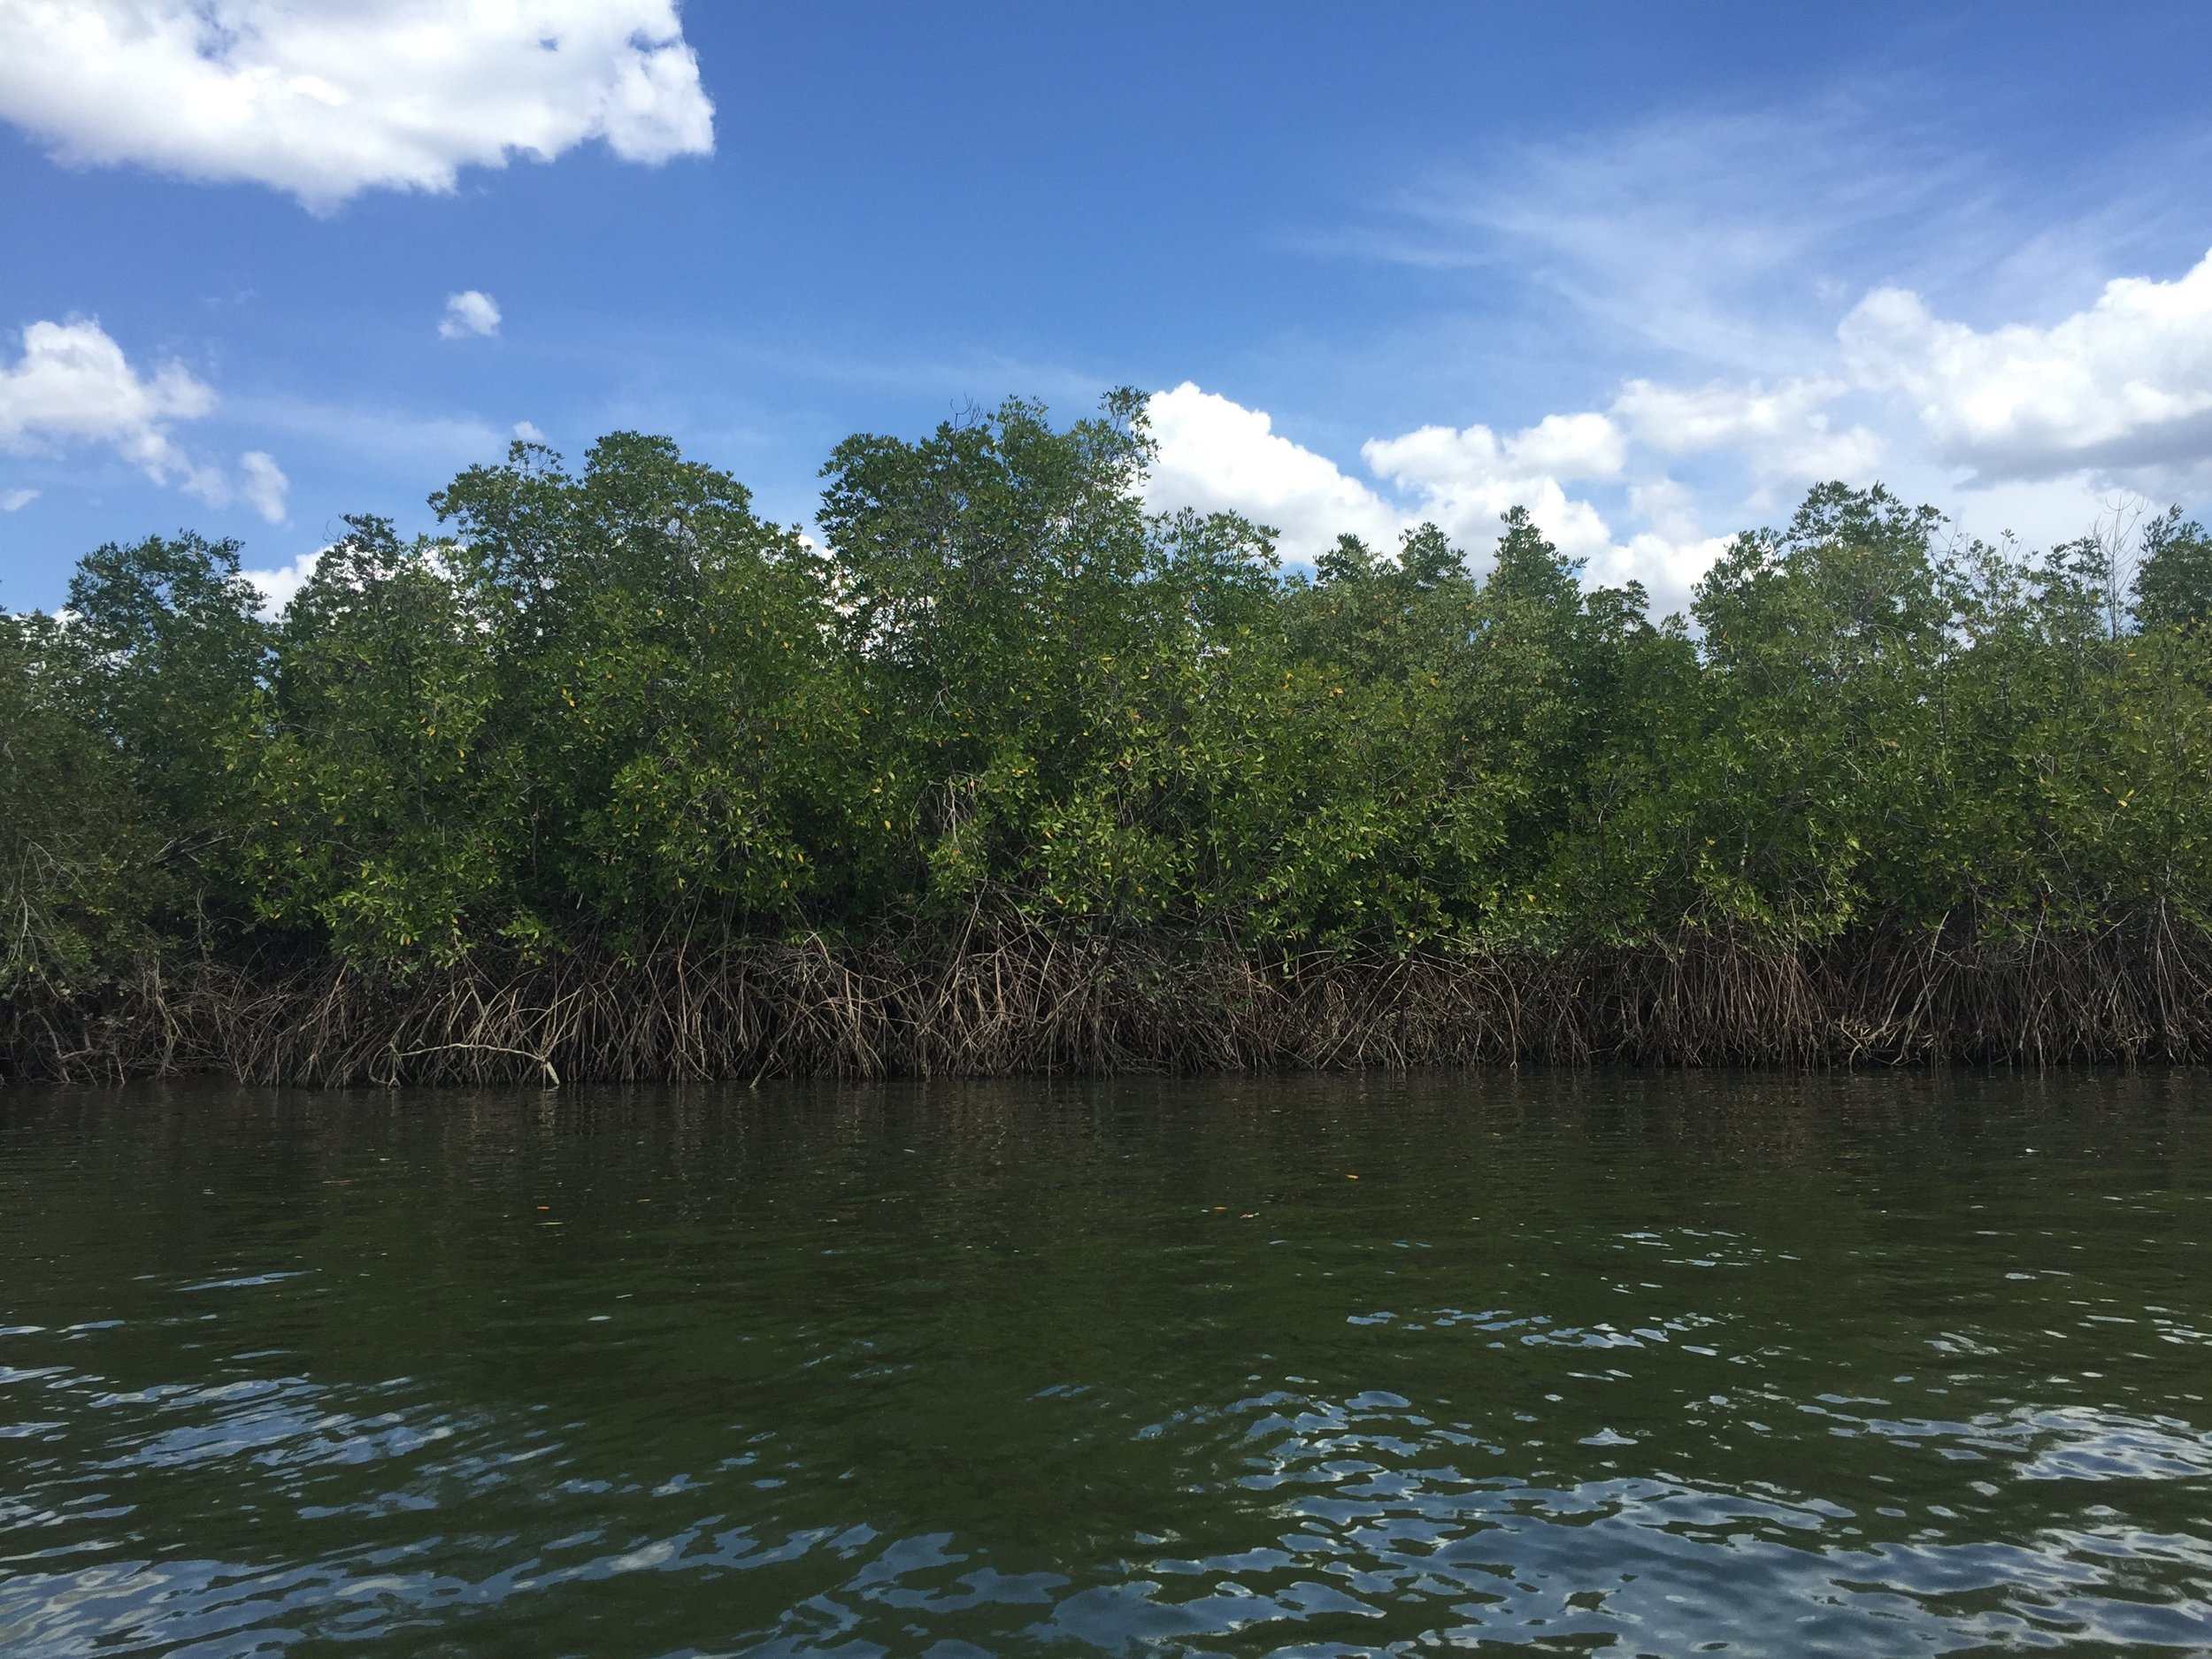 Mangroves in the Gulf of Fonseca